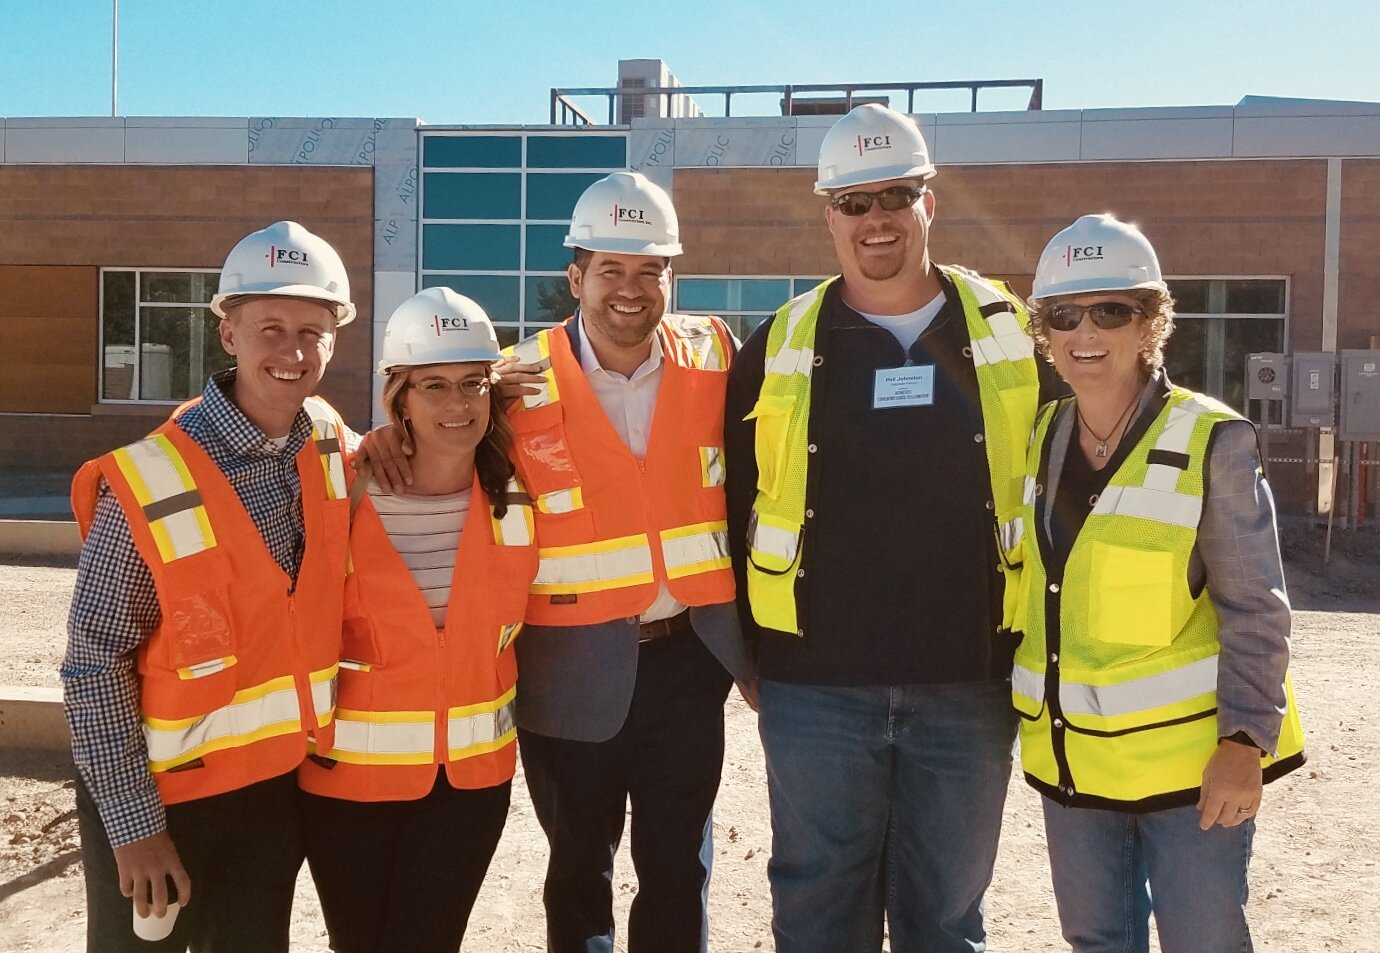 Fellows in Colorado participate in a construction site visit to learn more about the industry and the skills required.